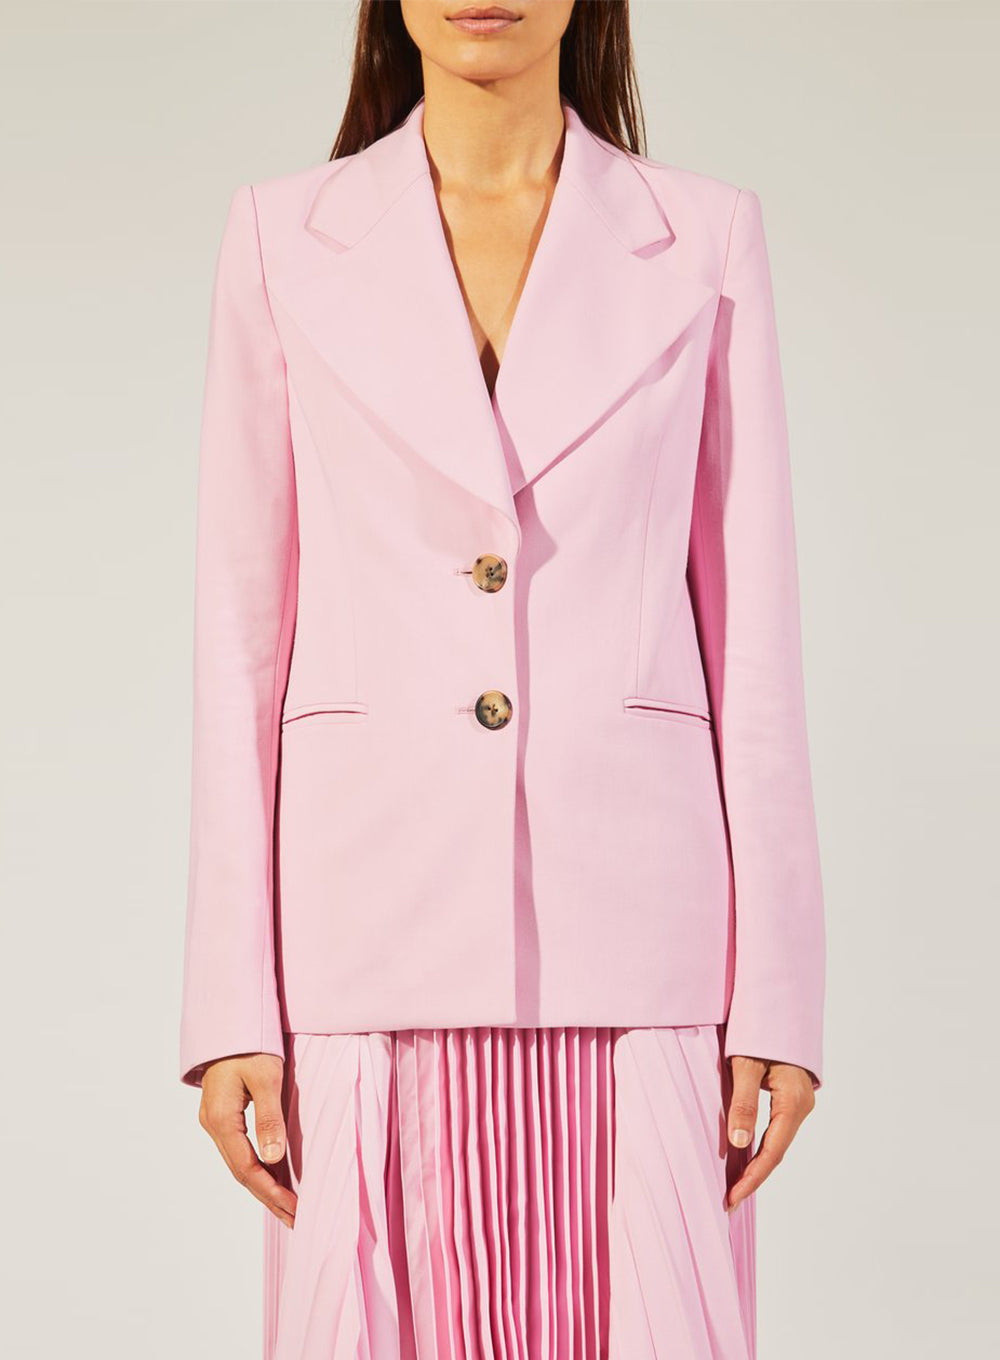 KHAITE | The Alexis Blazer in Tulip